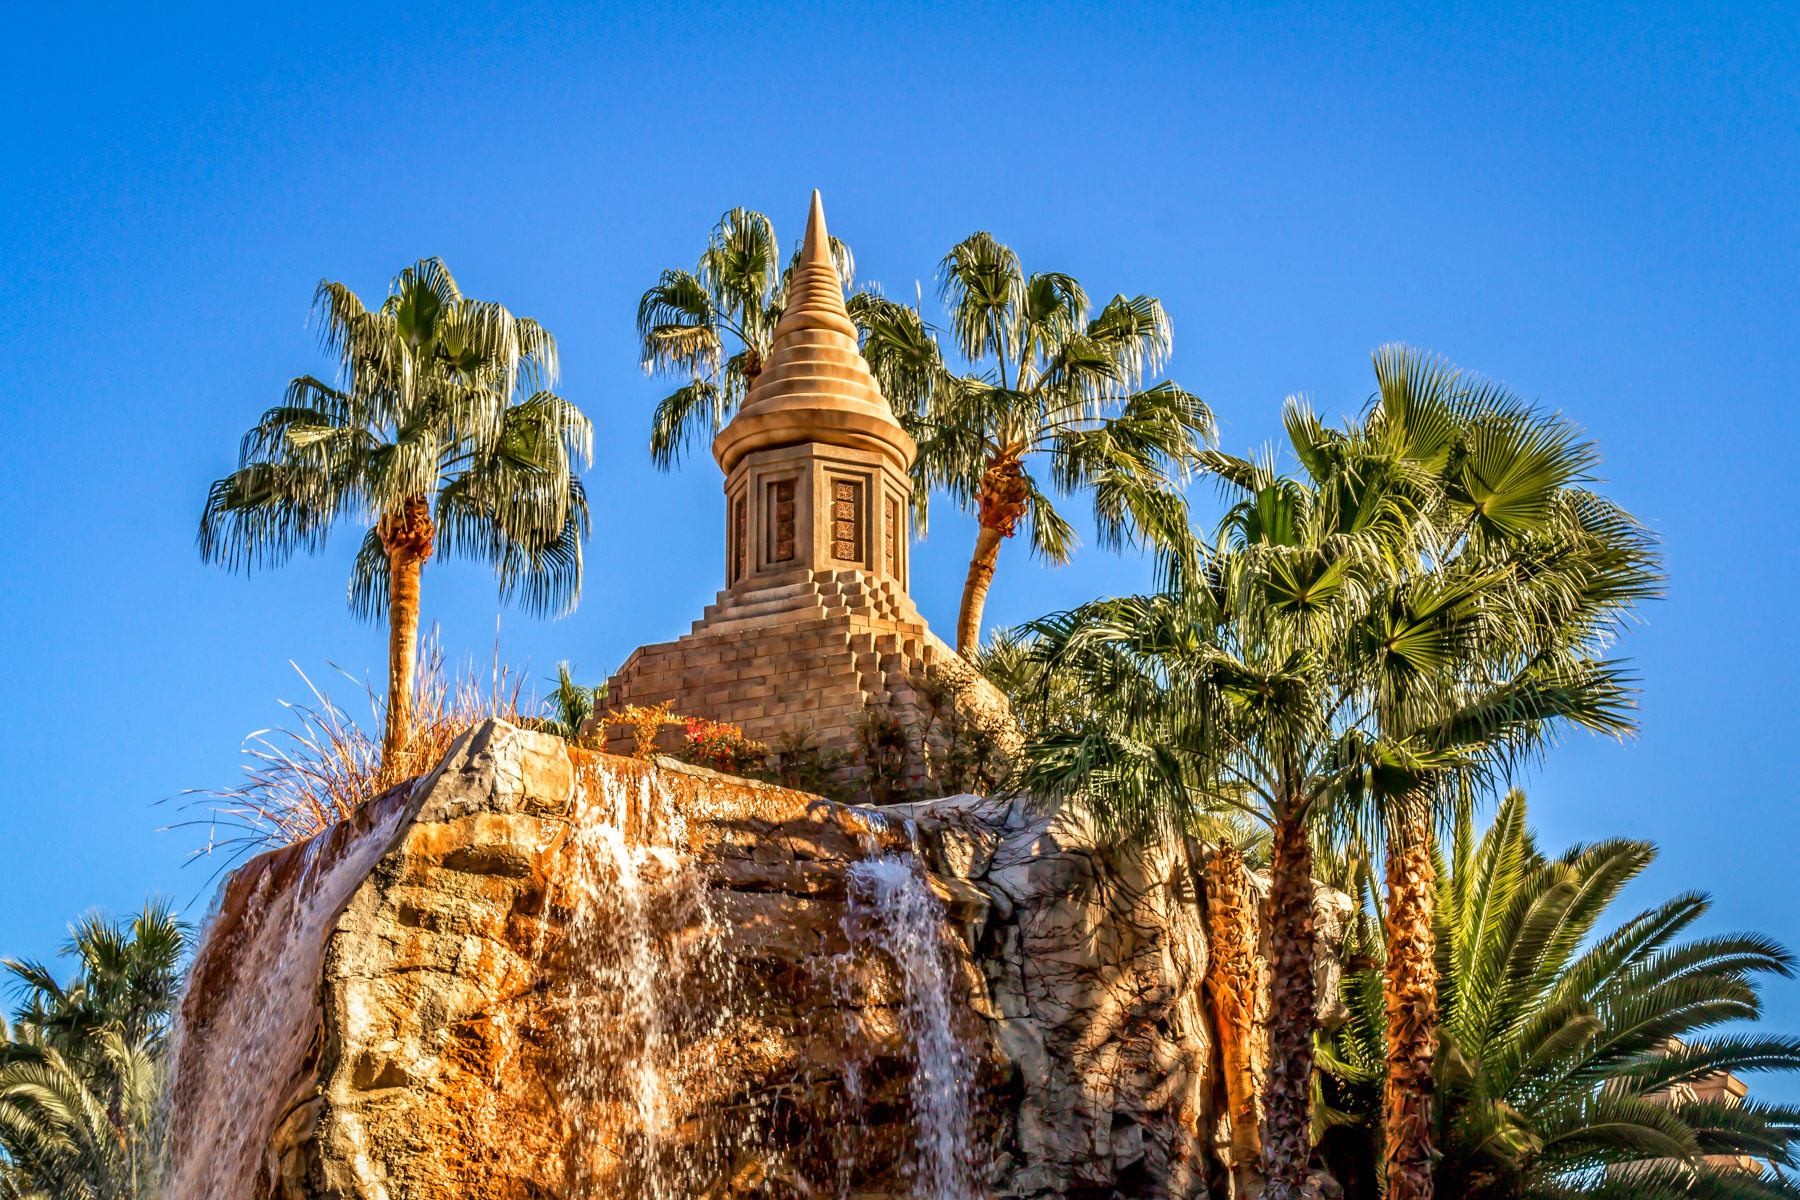 A small decorative temple atop a fountain spotted at the Mandalay Bay Hotel & Casino, Las Vegas.